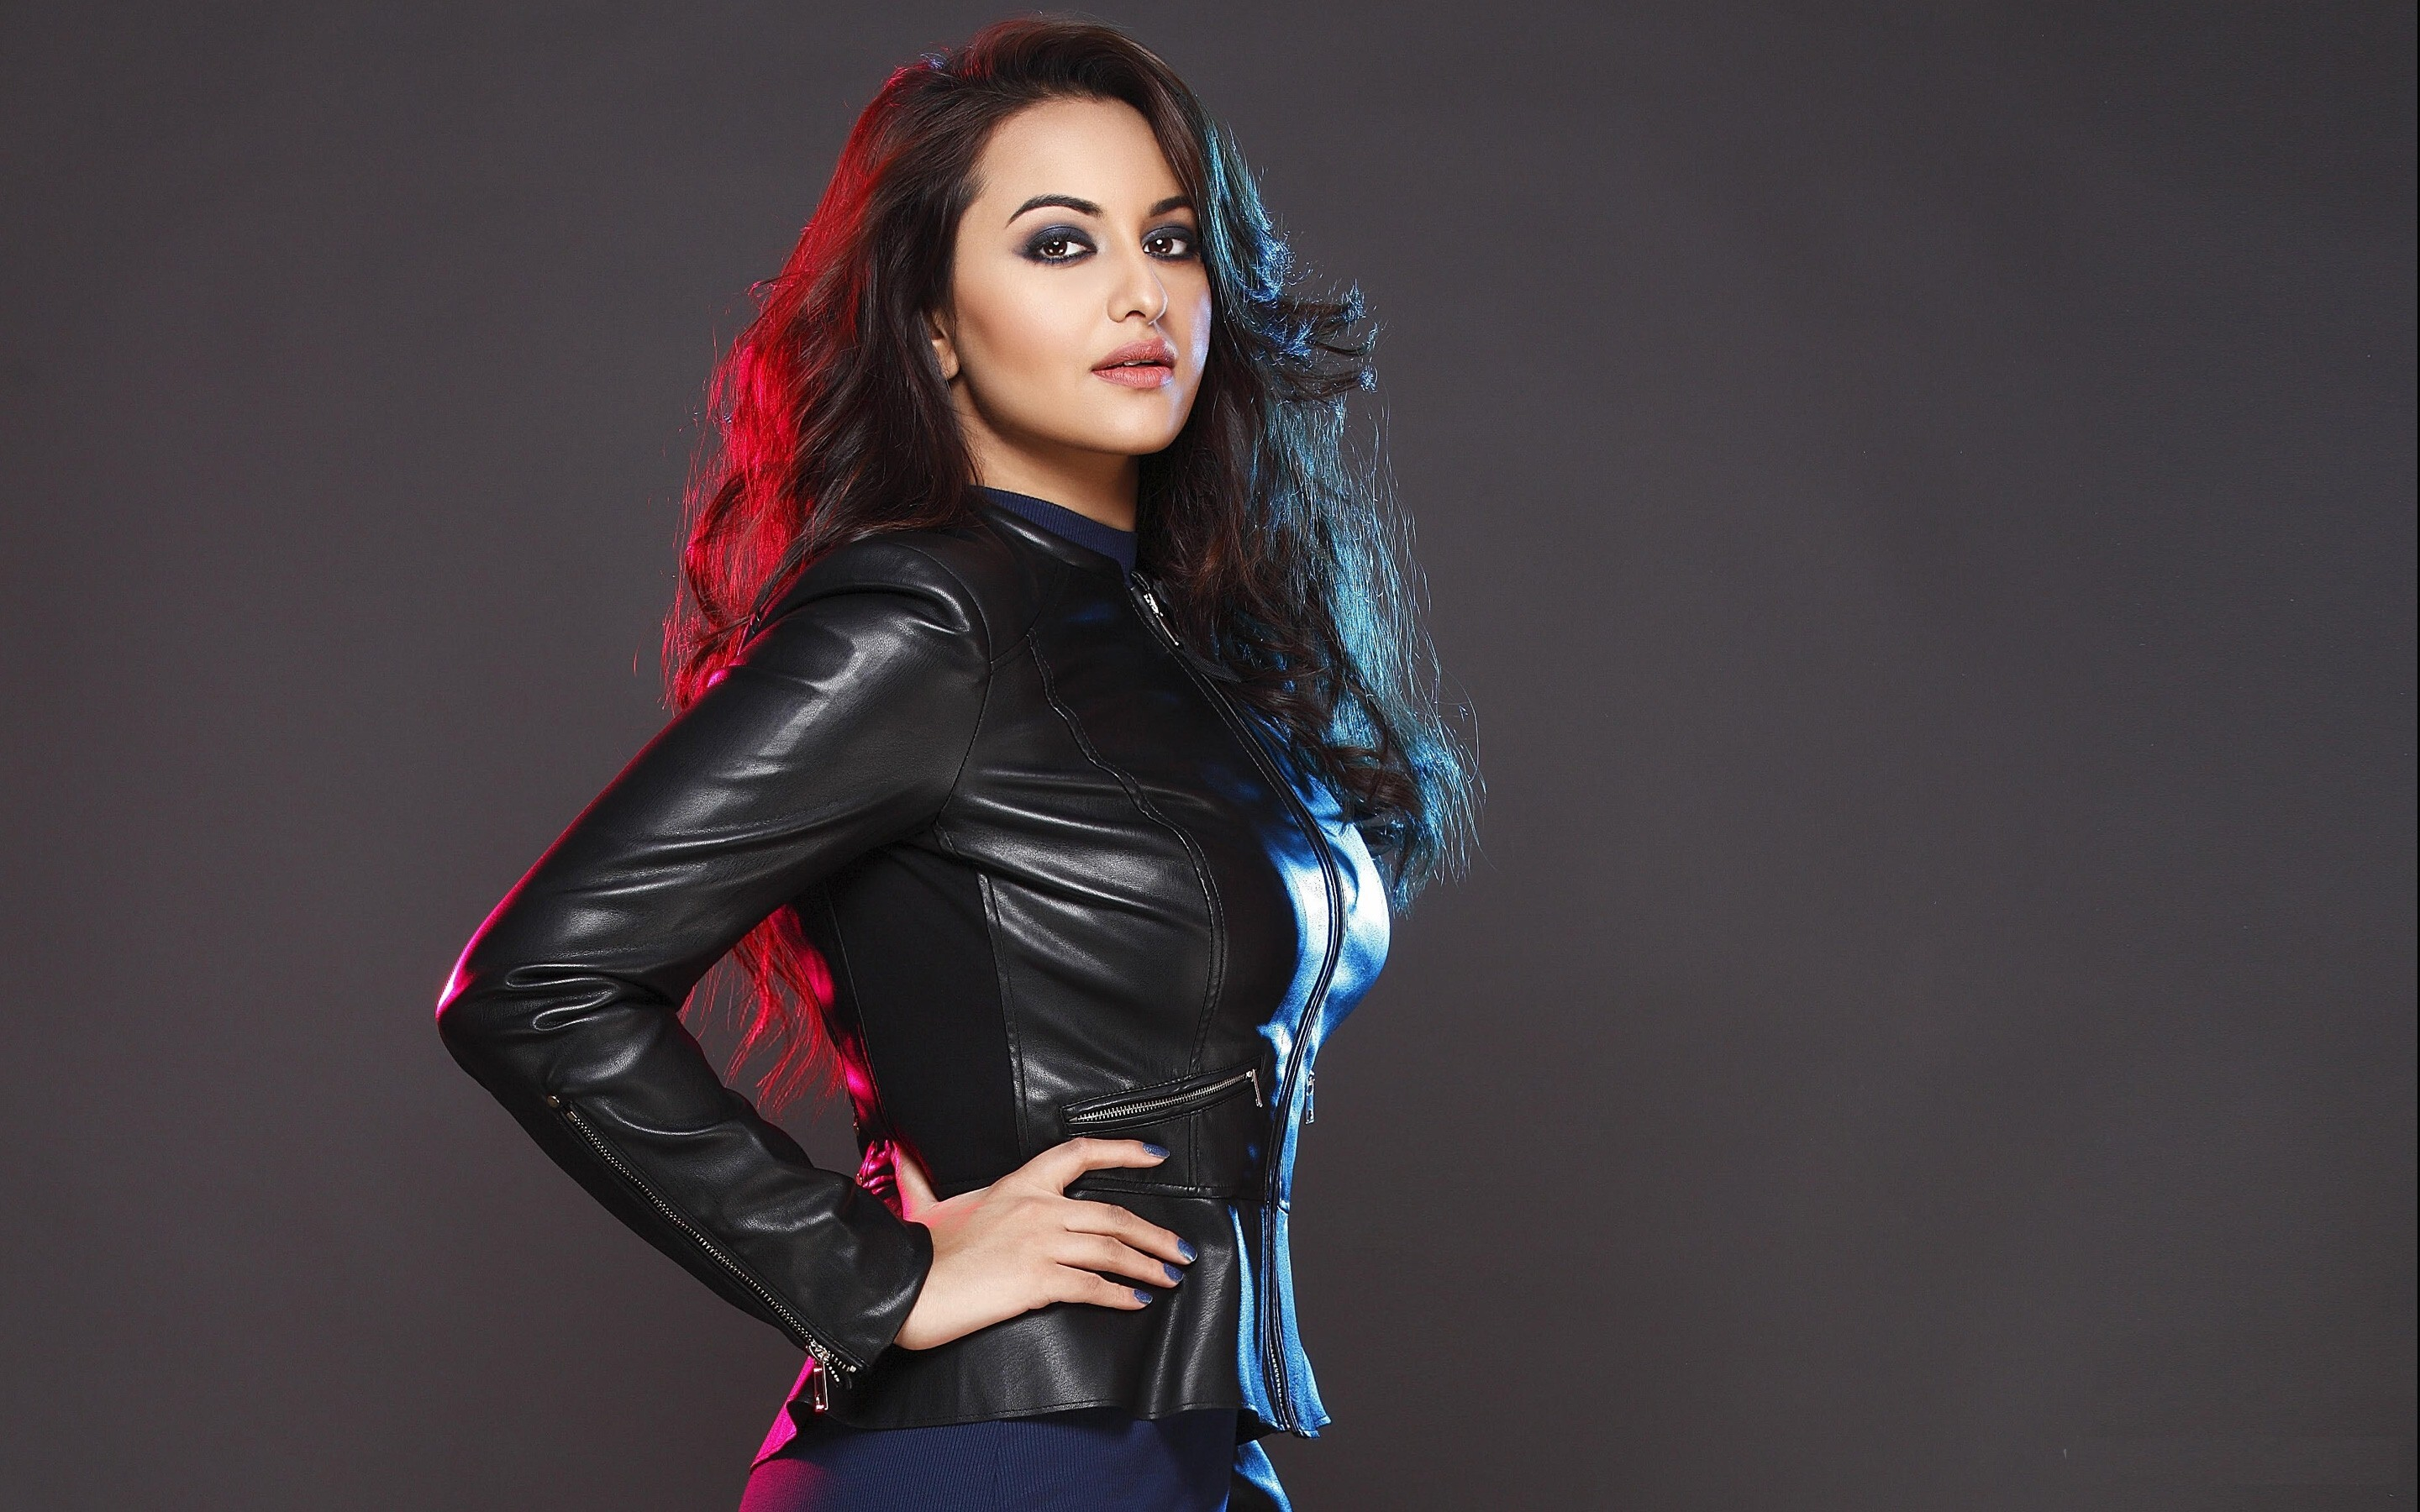 Sonakshi Sinha In Glamorous Look Wallpaper